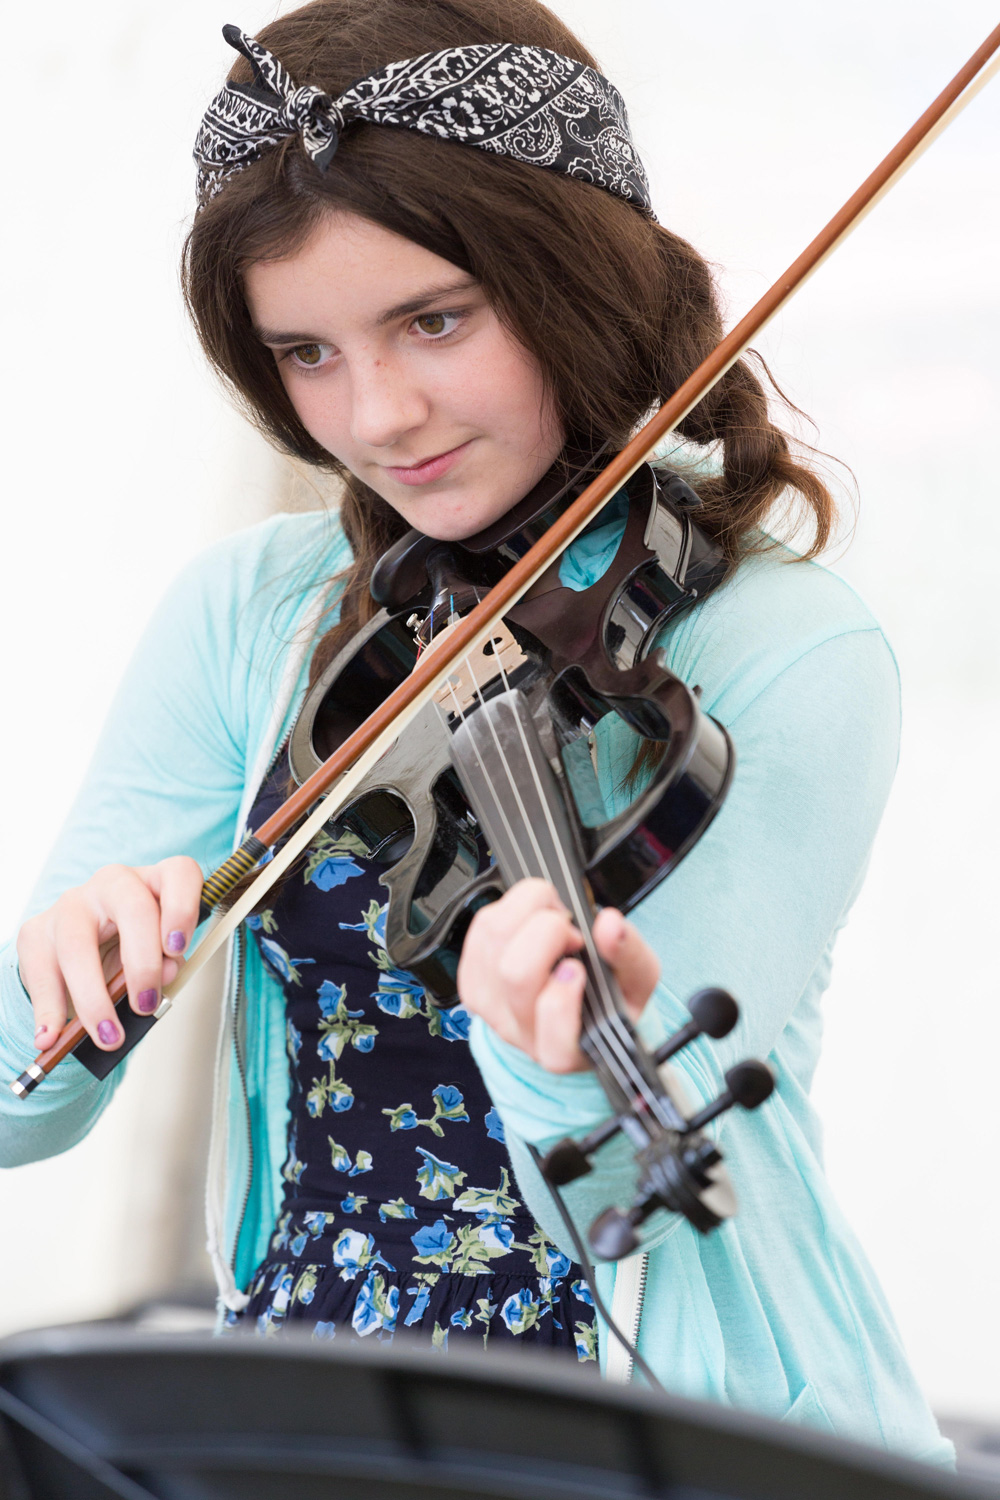 violin lessons for kids and adults near me in michiana